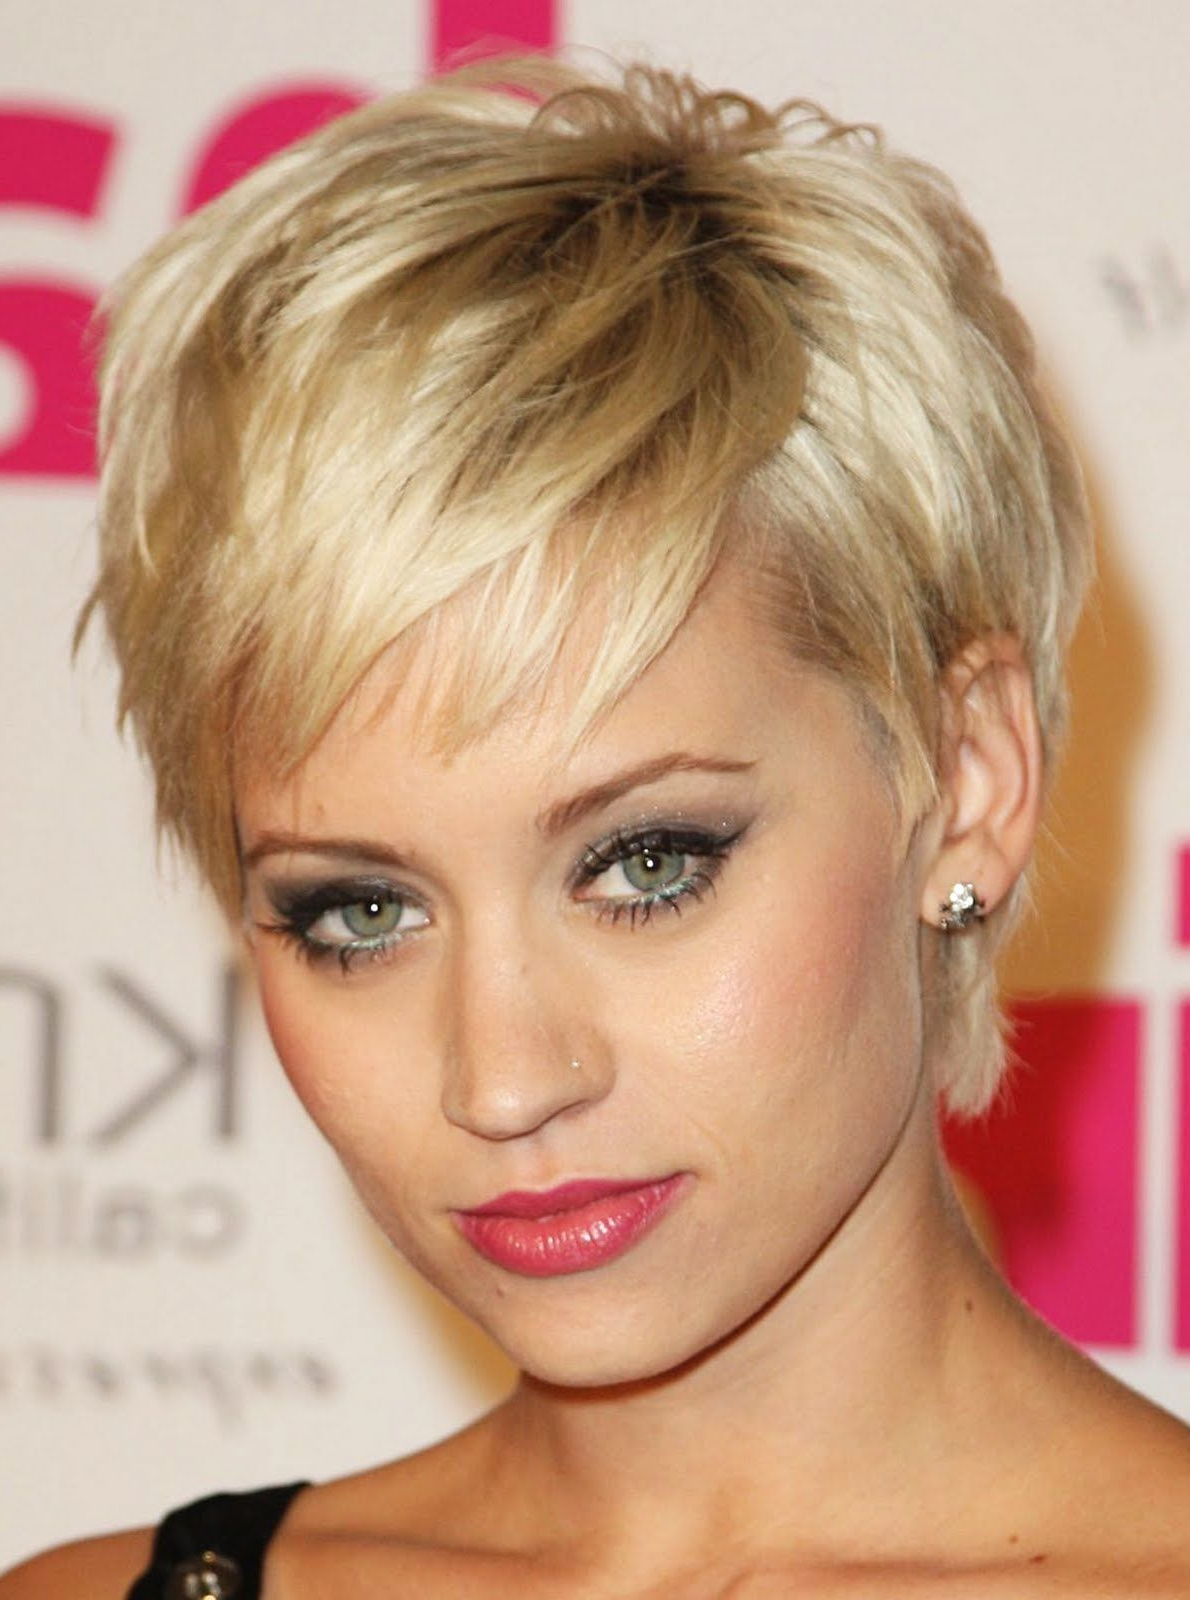 Short Hairstyles For Oval Faces | Hair Cut | Pinterest | Short Hair In Trendy Short Haircuts For Fine Hair (View 8 of 25)